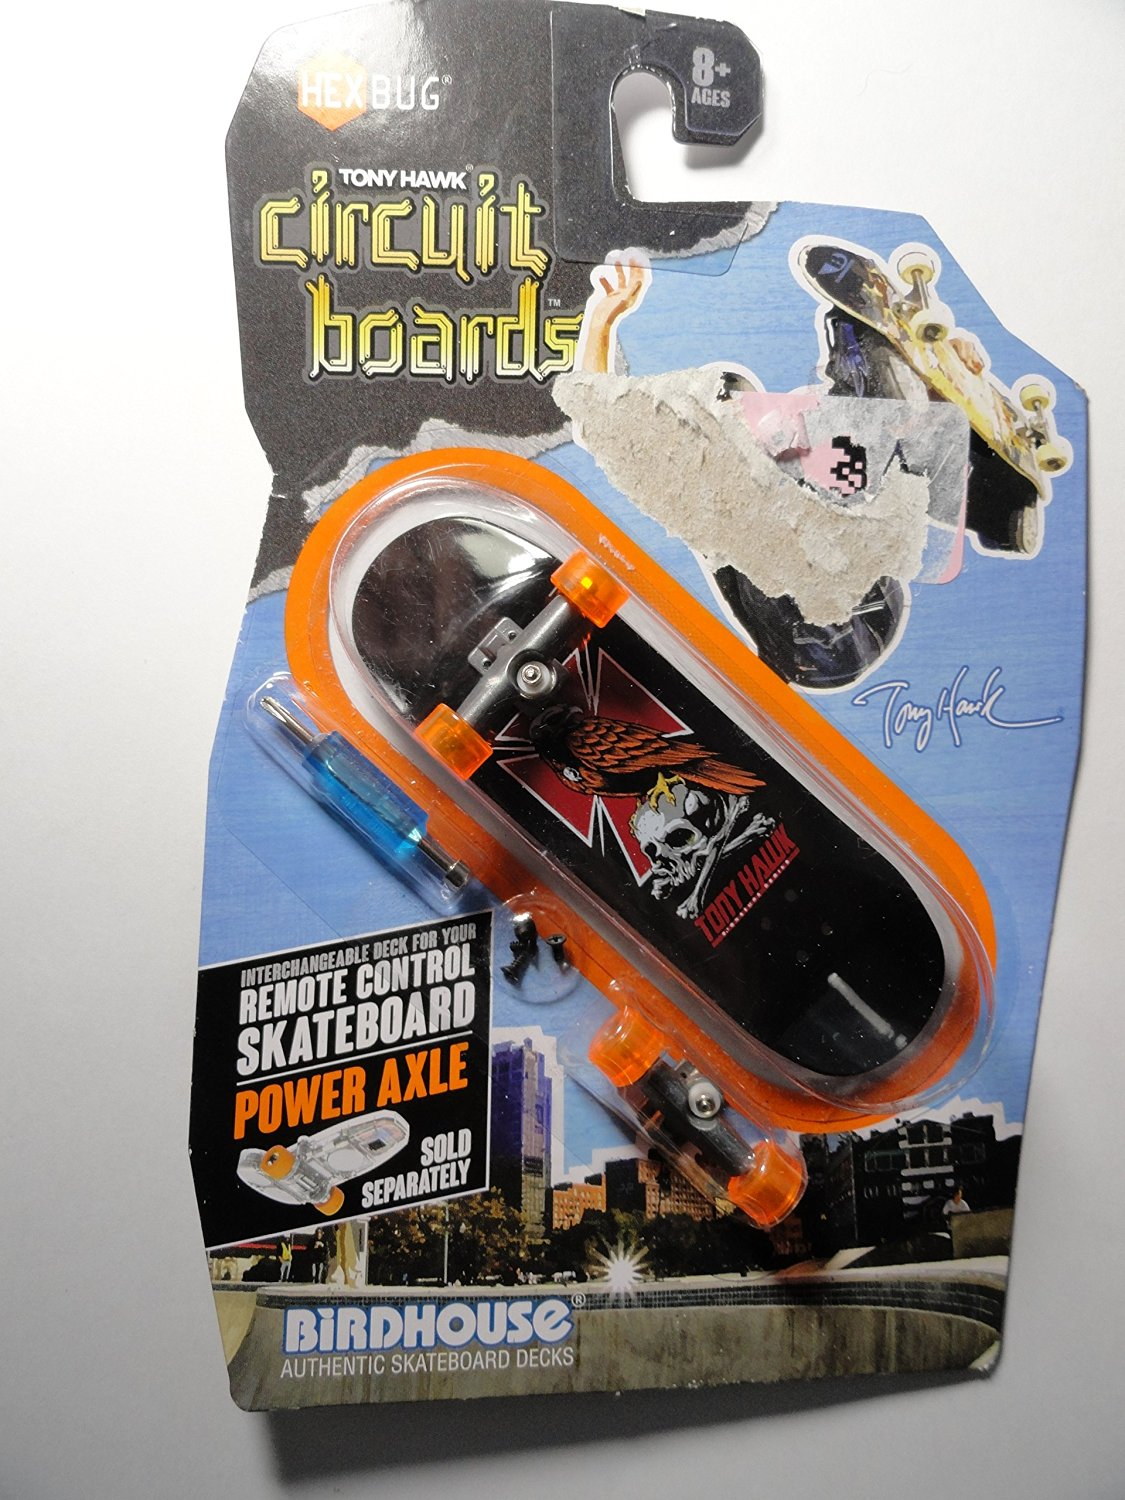 Tony Hawk Circuit Board Commercial Boards By Hexbug Power Axle Set Innovation First Bluetooth Module Hc 06 Find Complete Details About Hawkbluetooth 06bluetooth